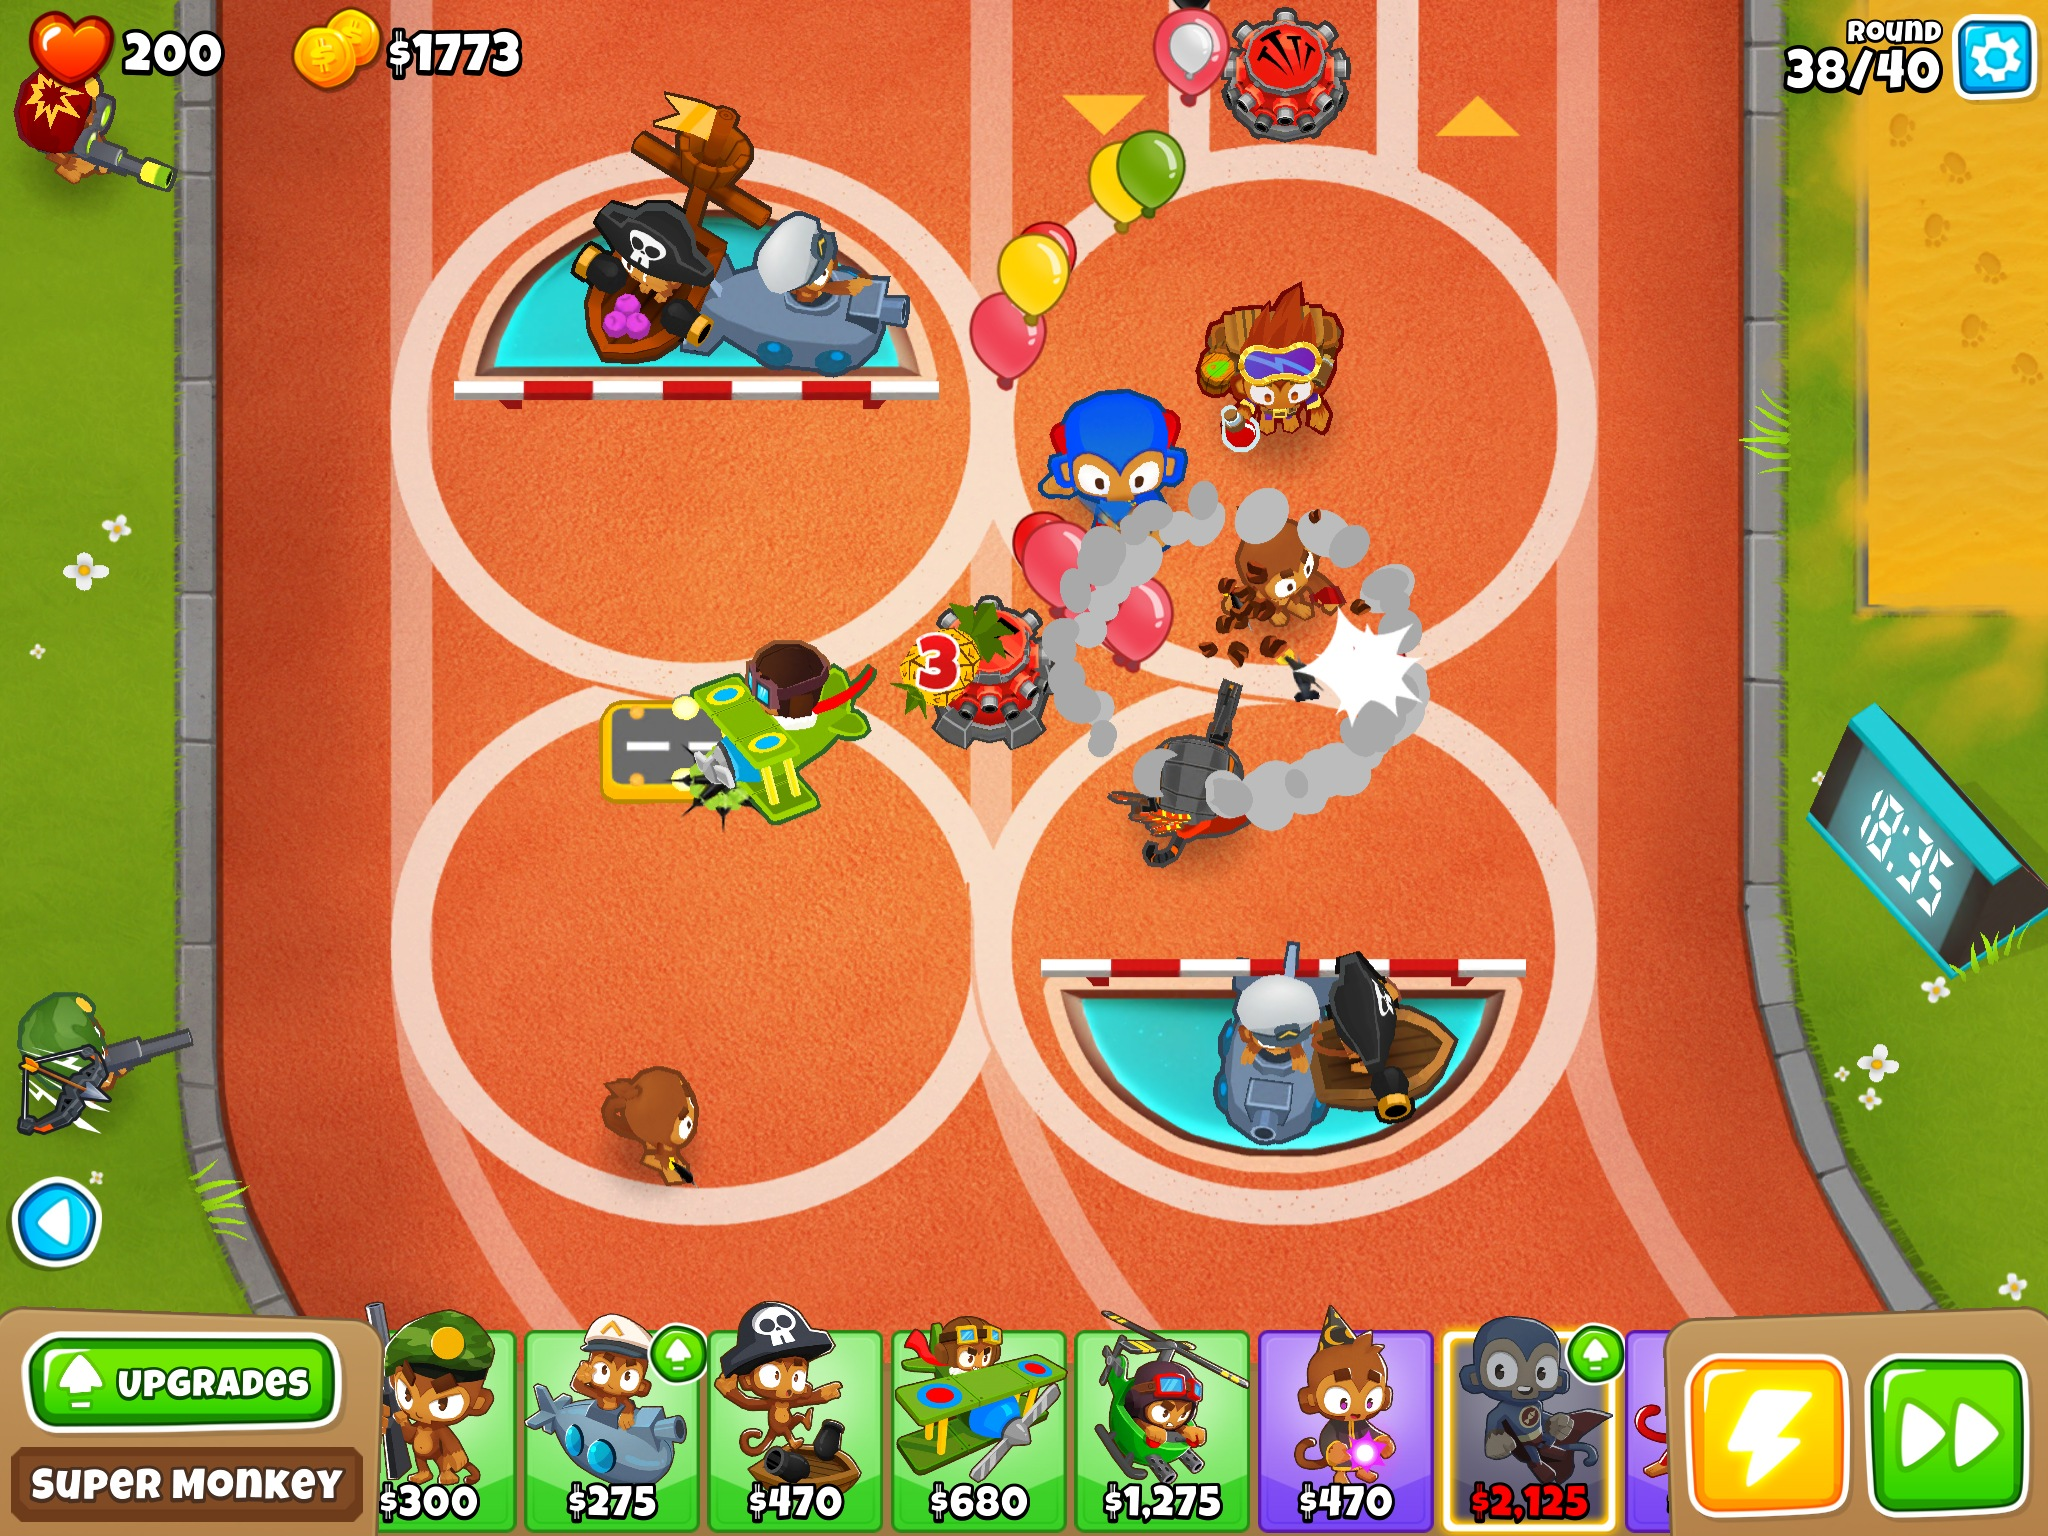 Bloons TD 6' Review – The Game Where Everything Happens So Much